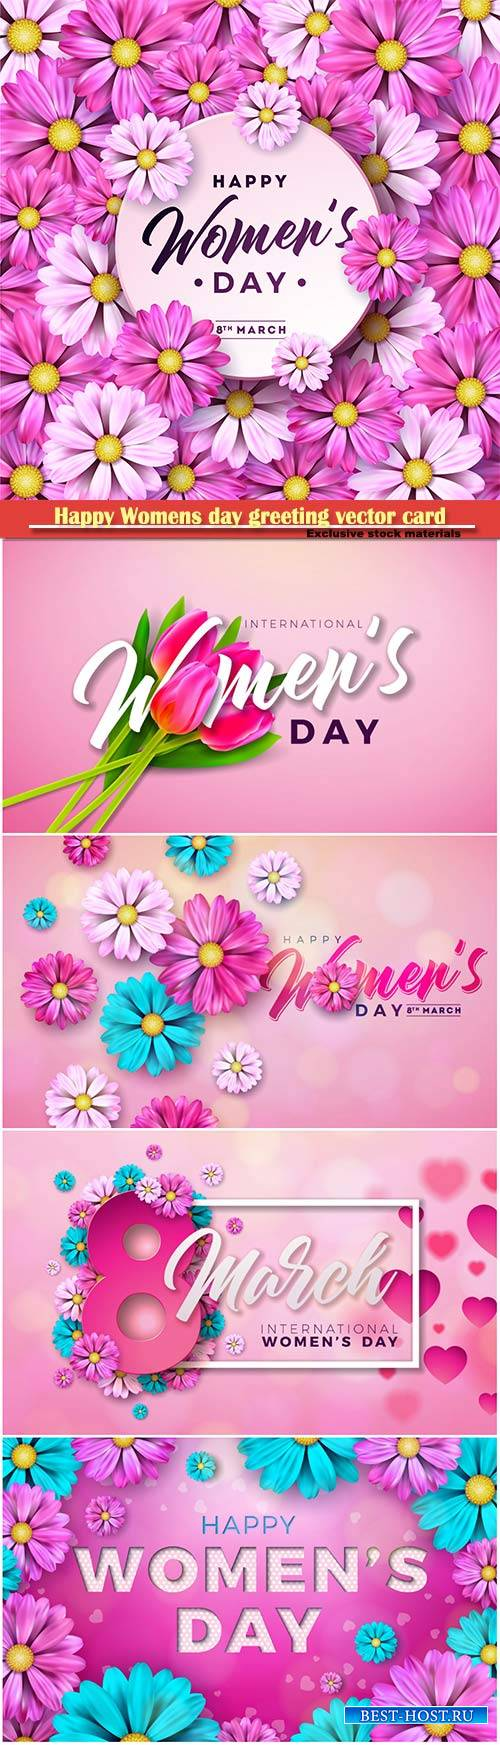 Happy Womens day floral greeting vector card design # 4